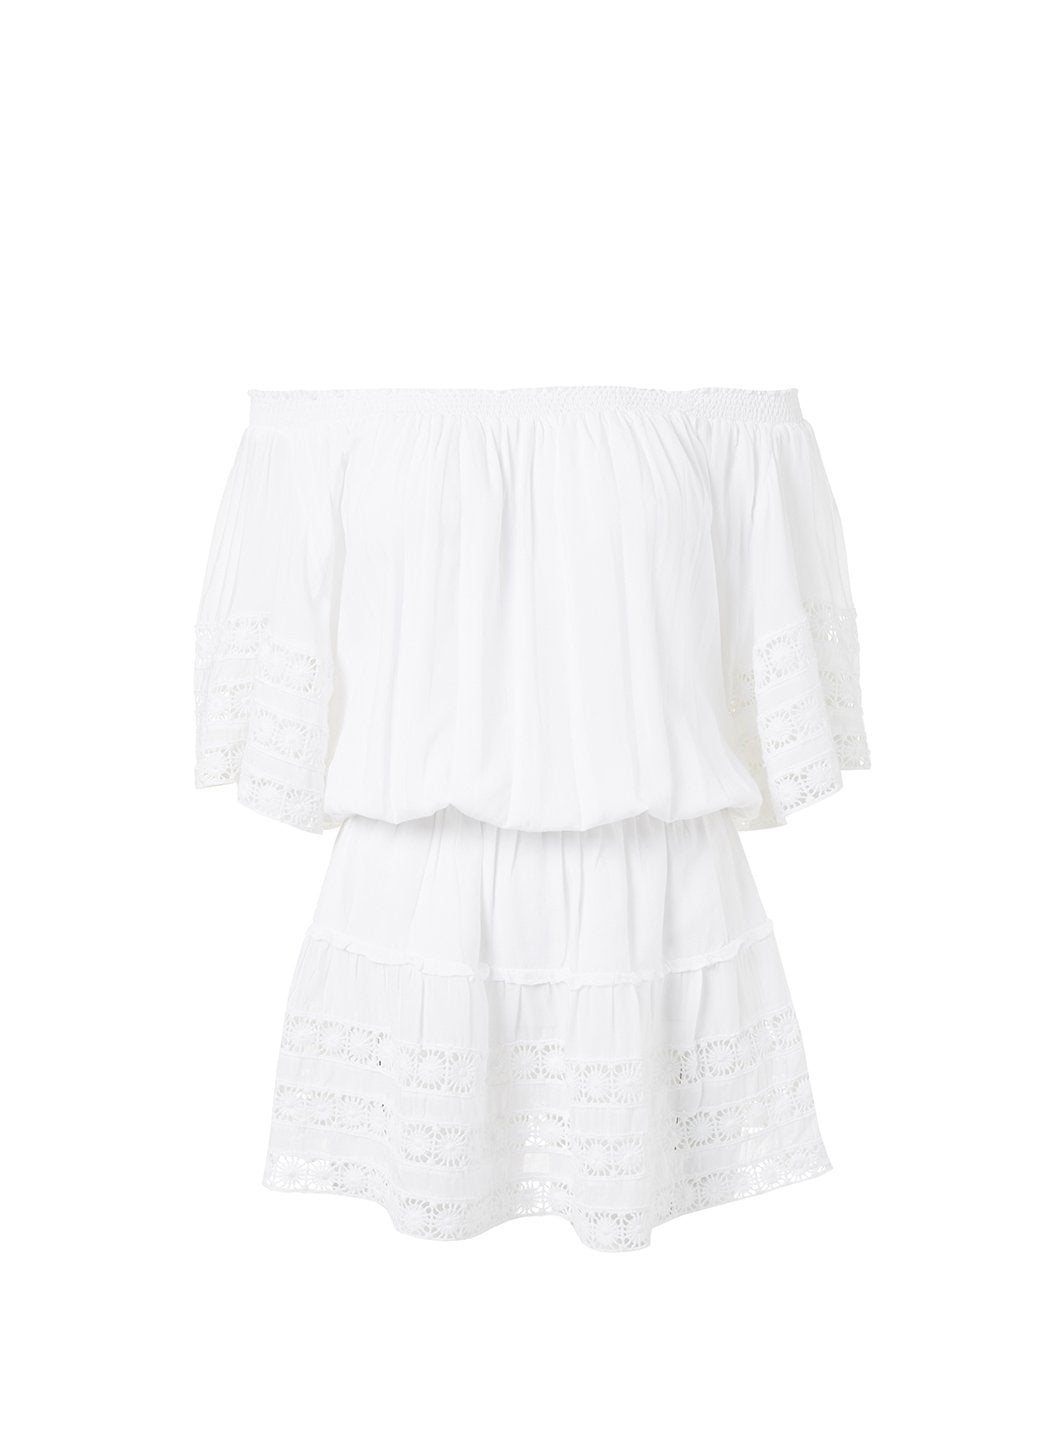 michelle white offtheshoulder short beach dress 2019